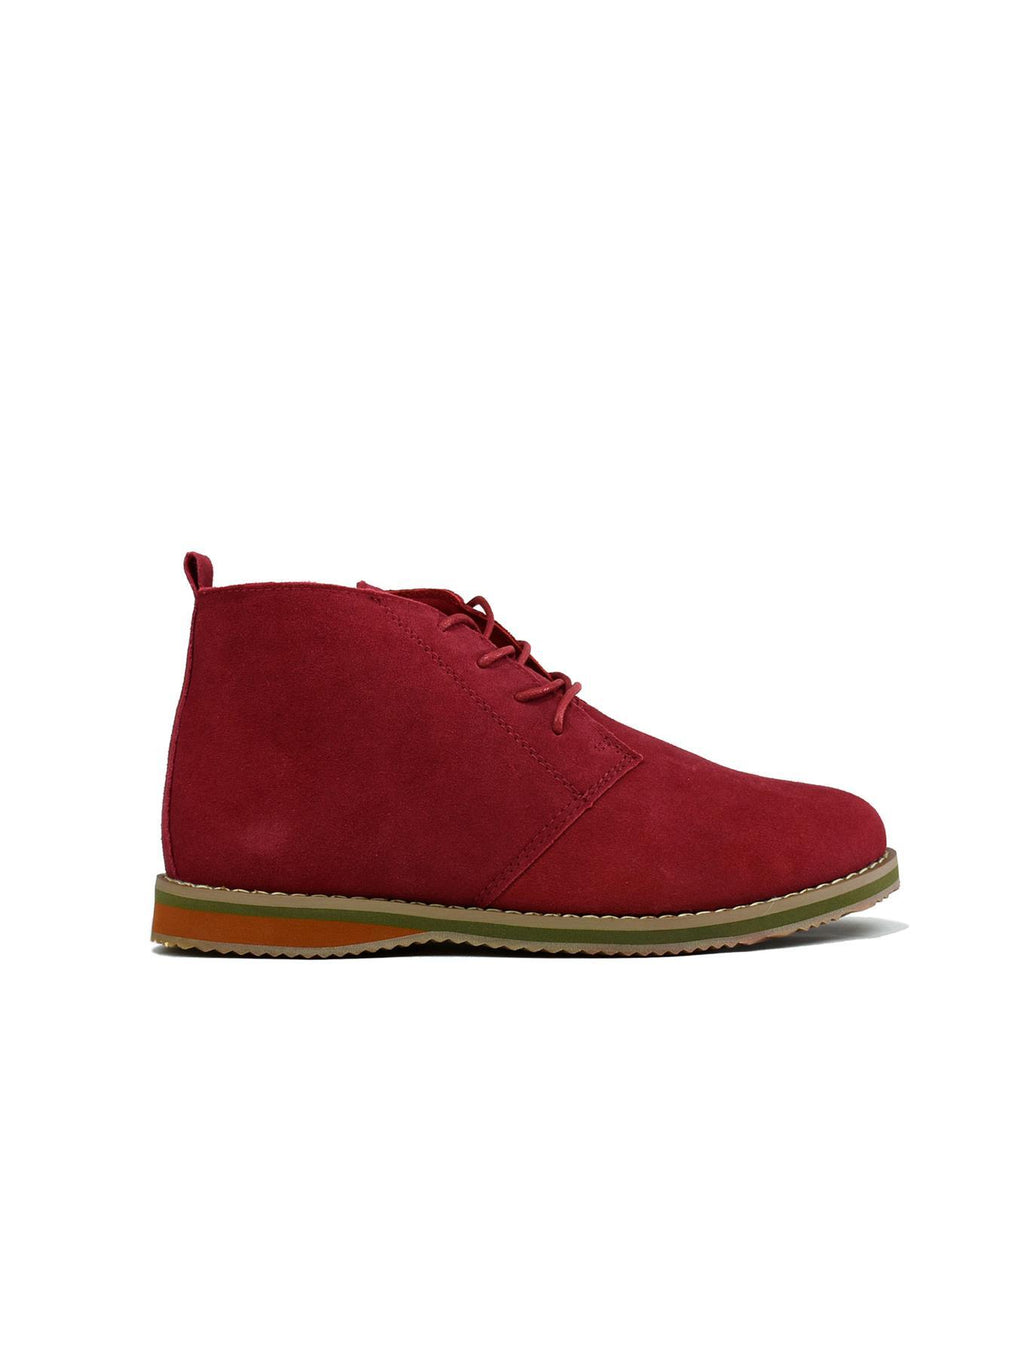 Men's Suede Desert Boot Red